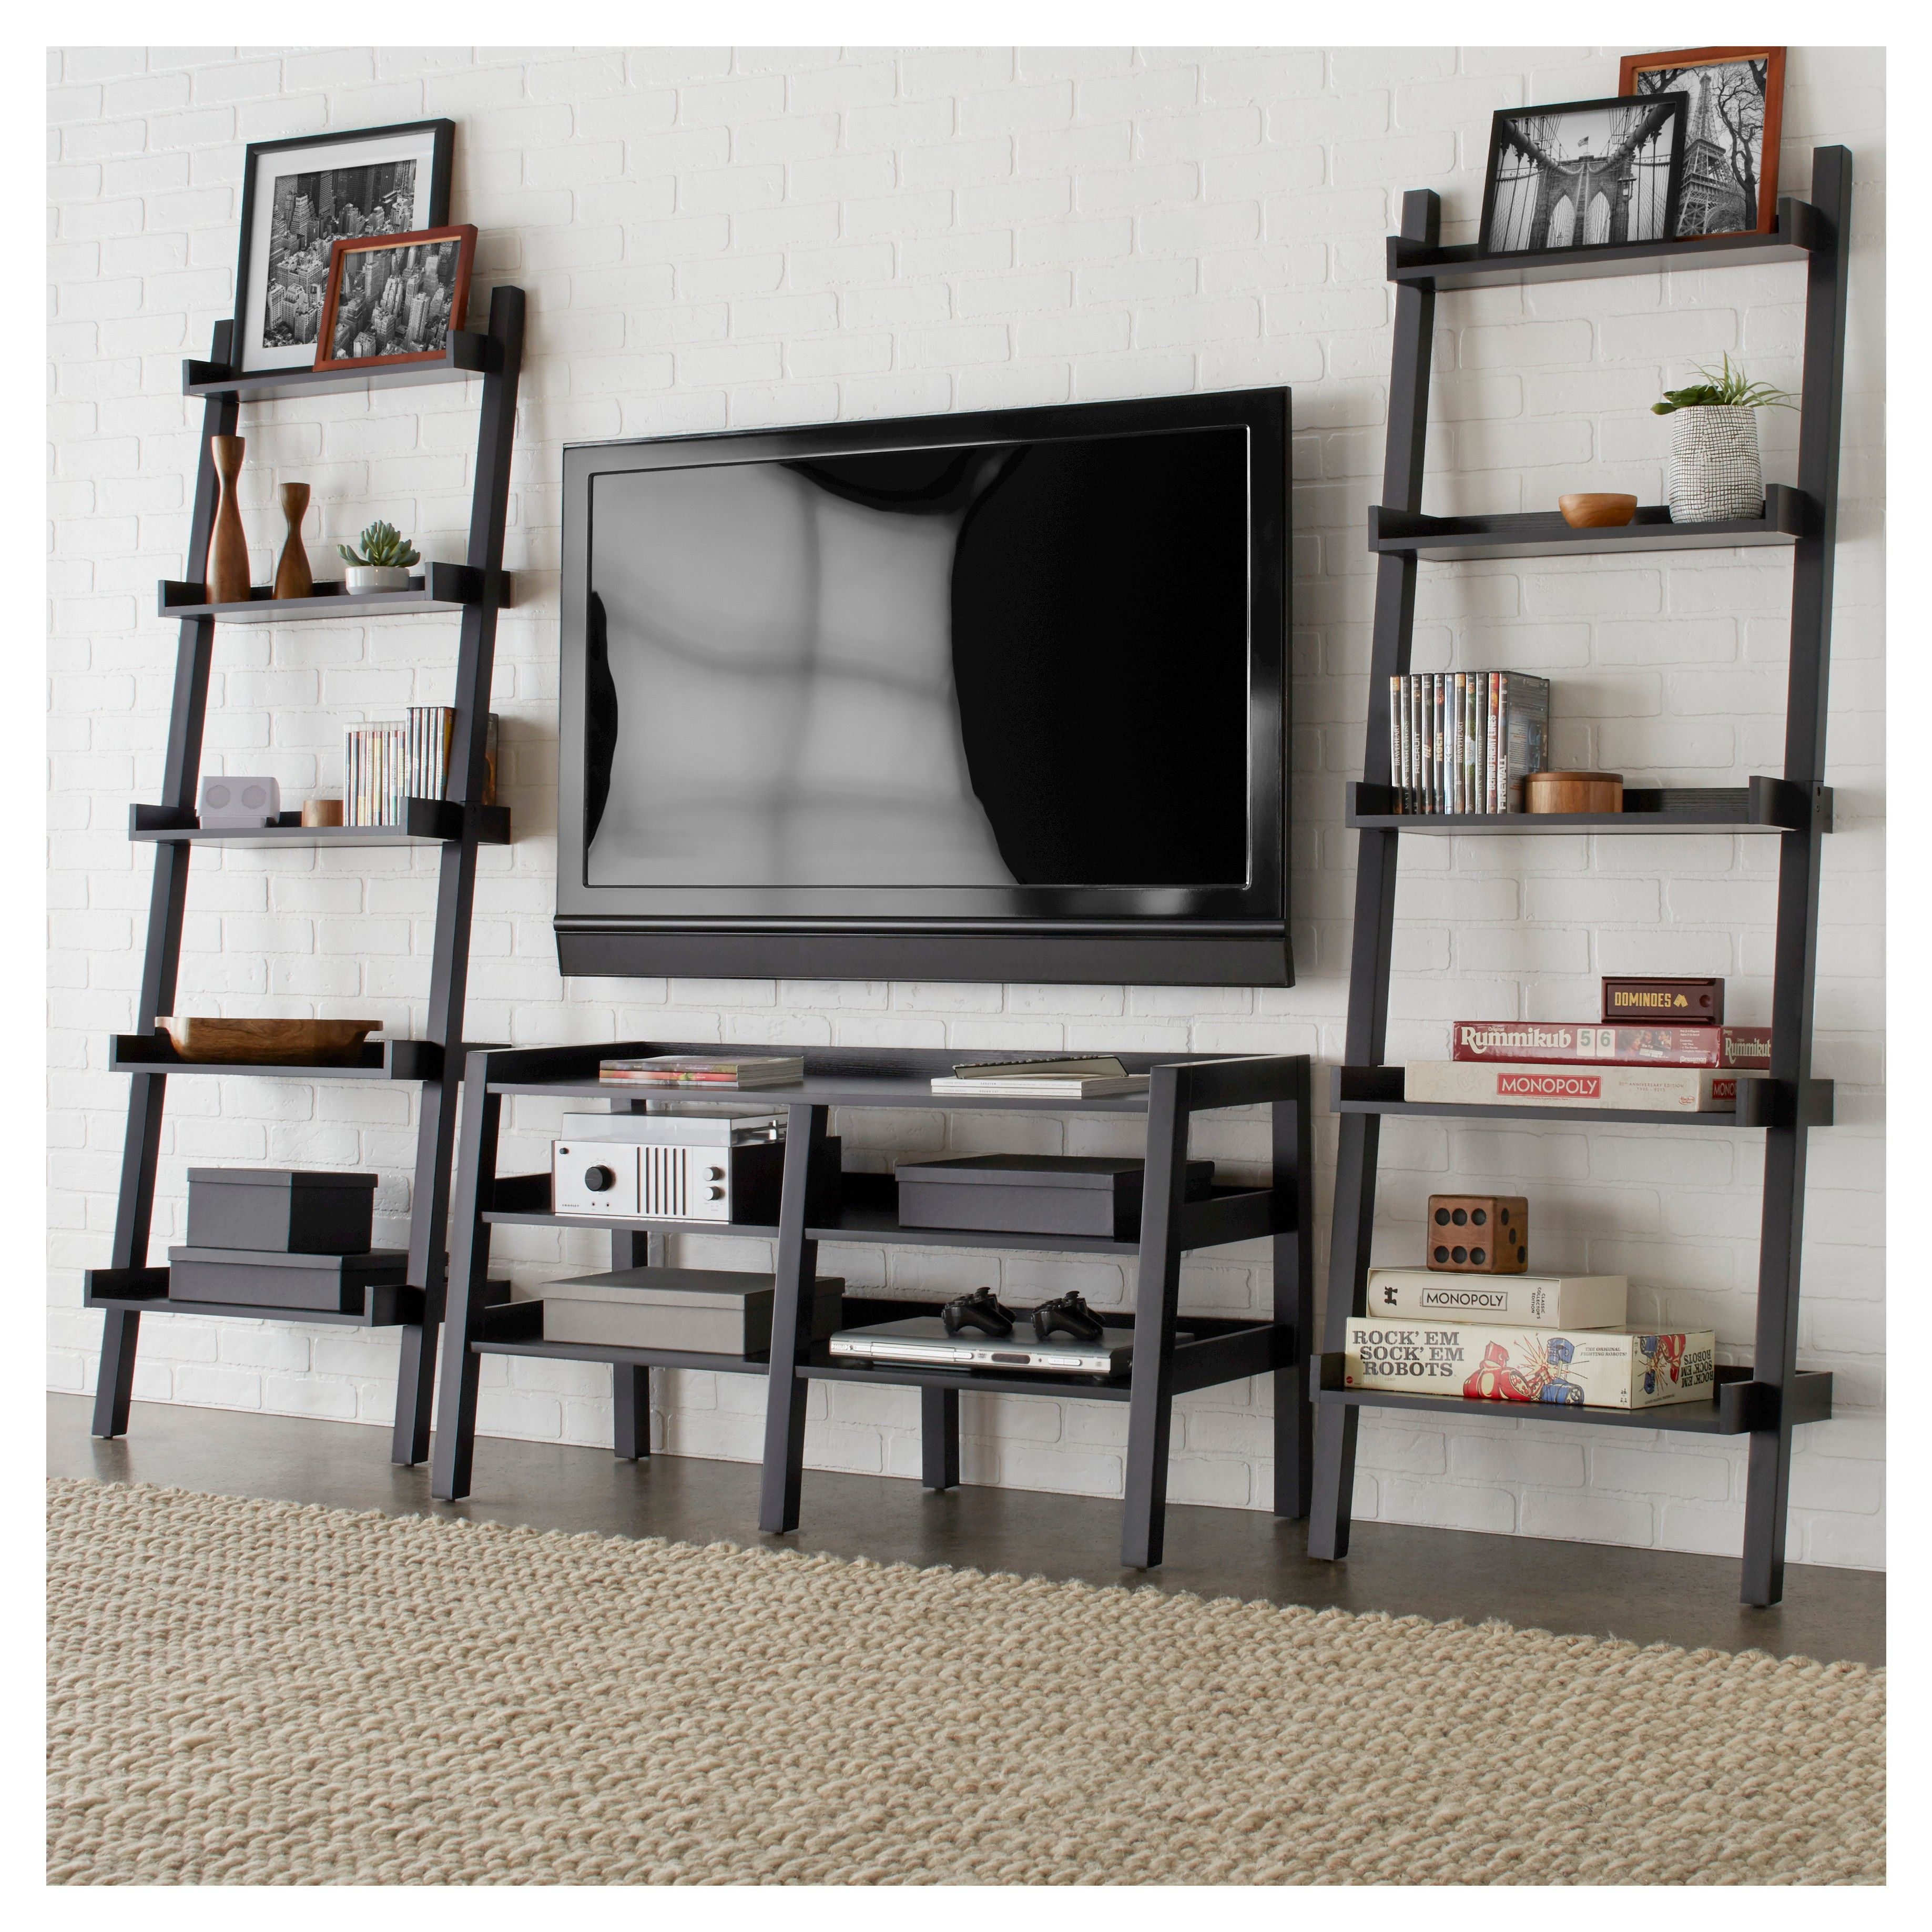 This Is 21 List Of Creative DIY TV Stand Ideas That You Might Want To Build At Home Lets Start Building It From Scratch